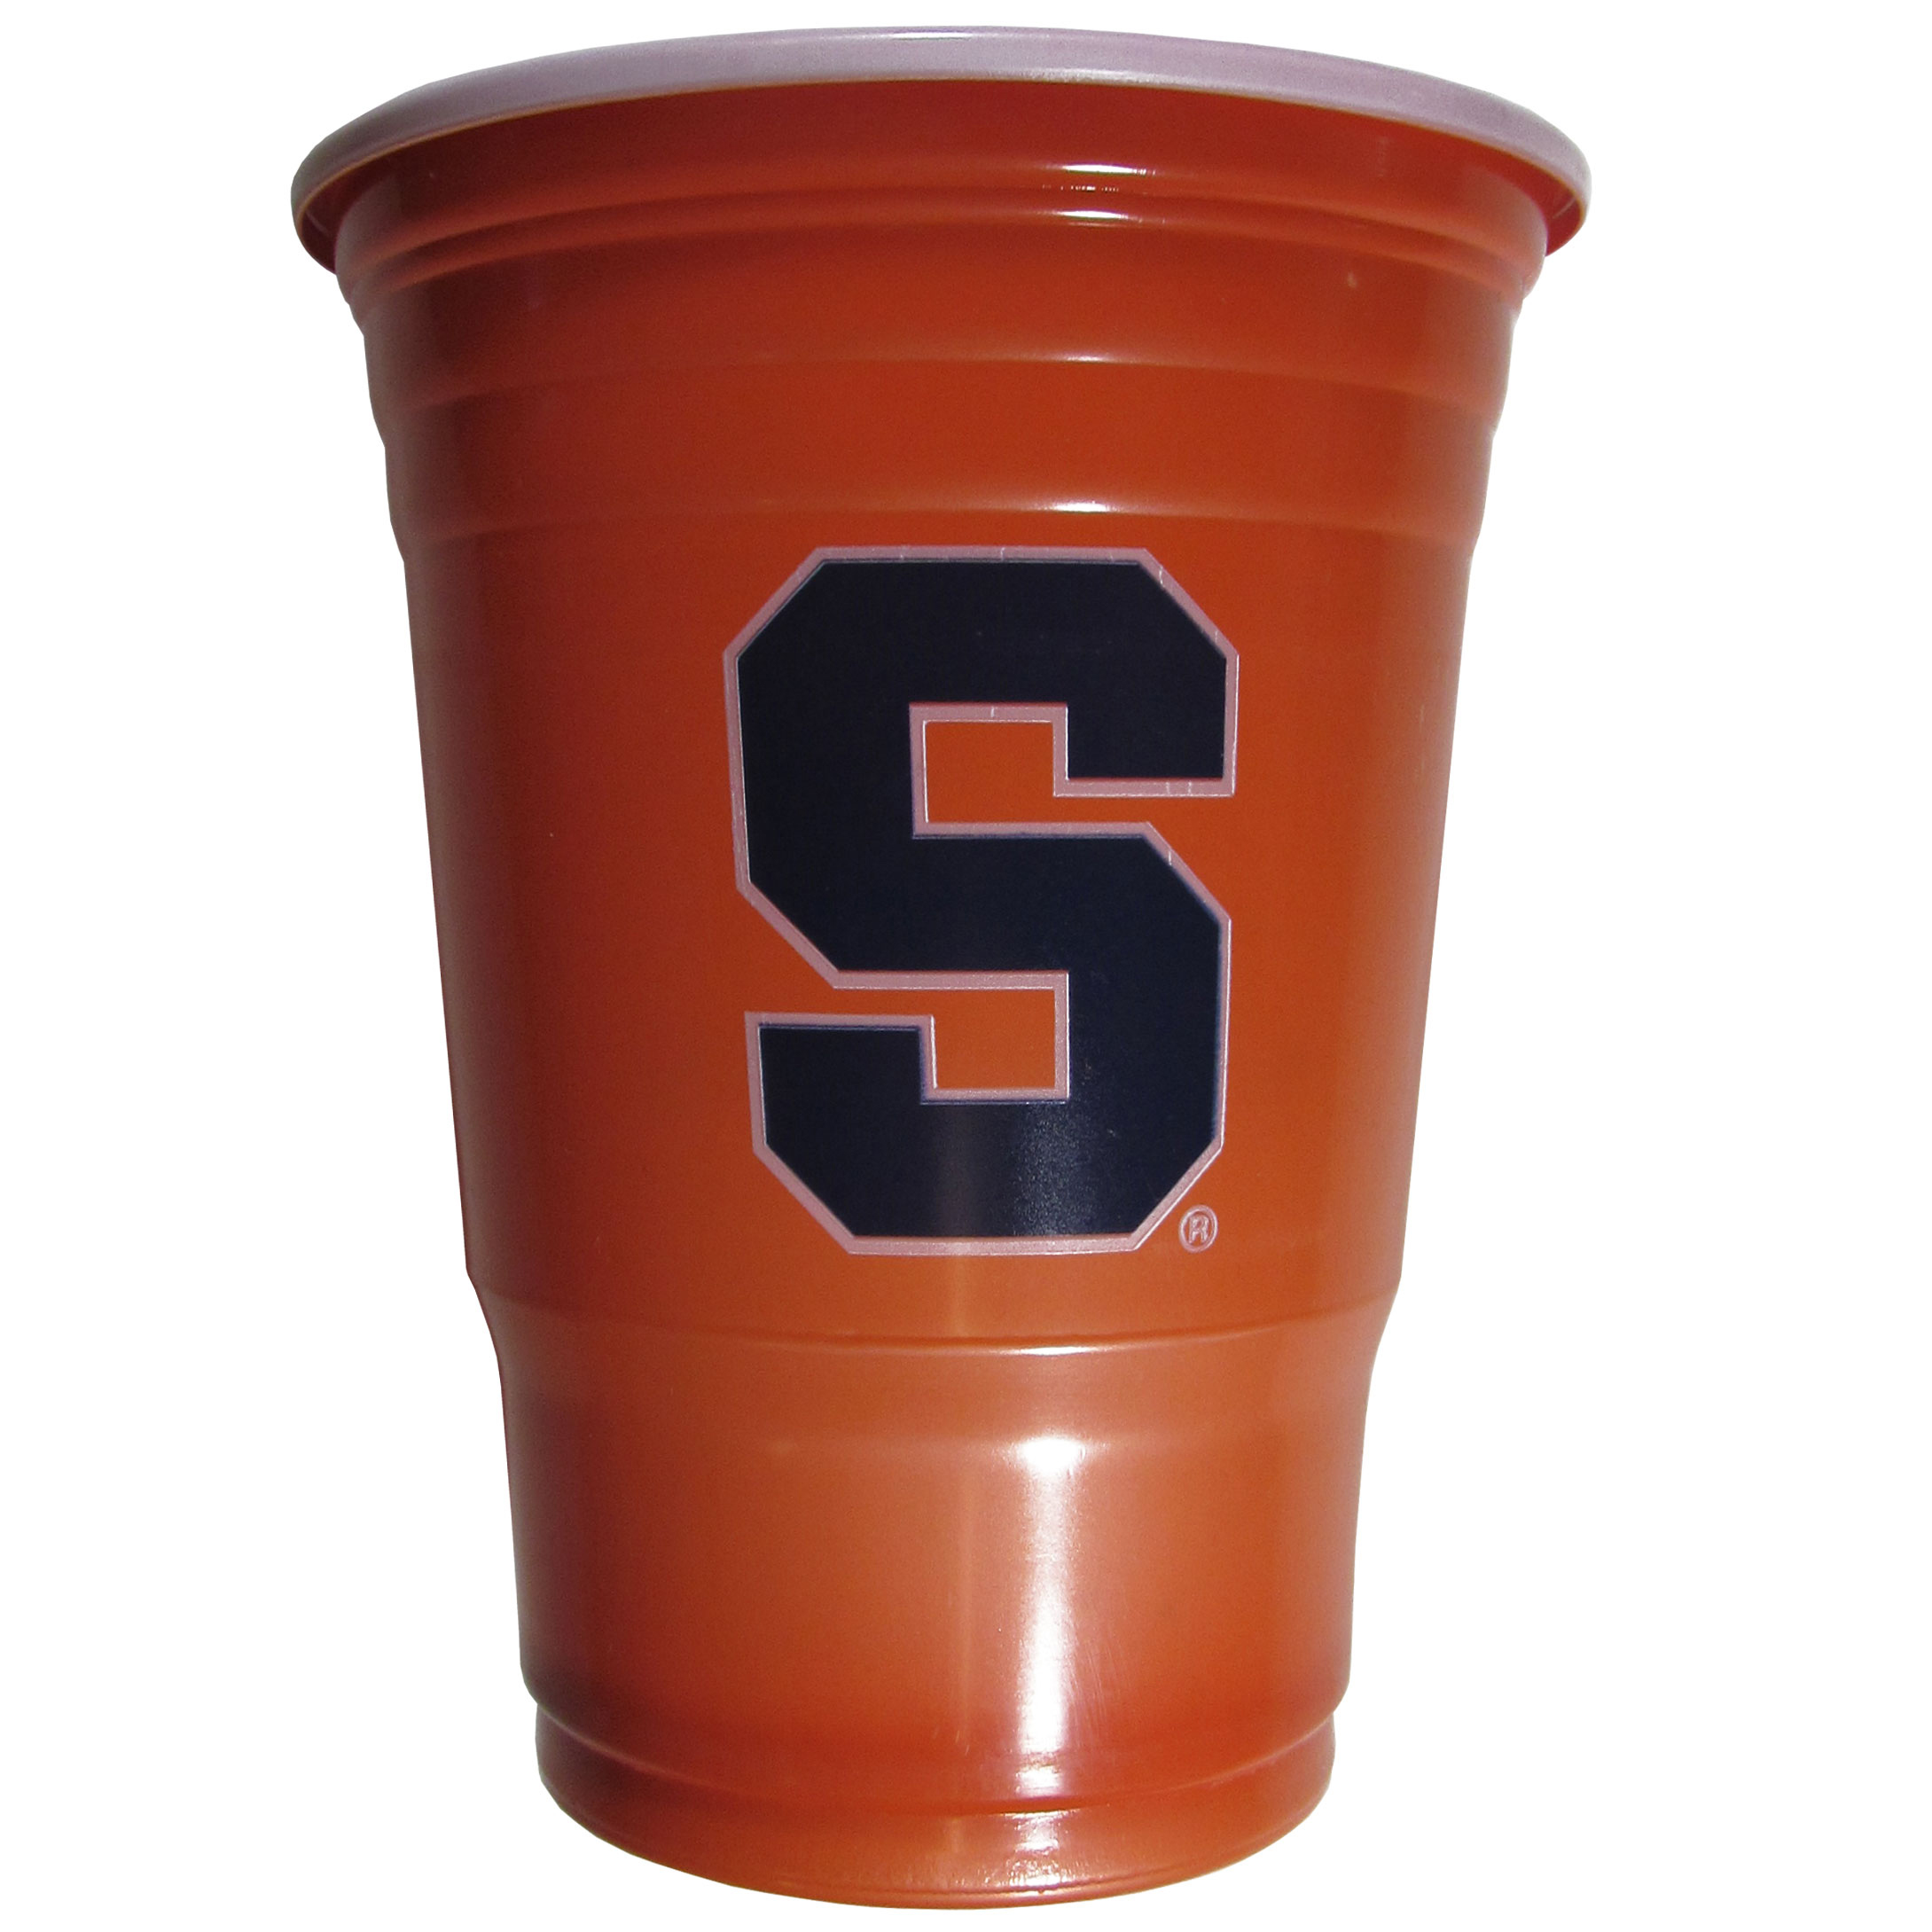 Syracuse Orange Plastic Game Day Cups 2 sleeves of 18 (36 Cups) - Our 18 ounce game day cups are what every tailgating or backyard events needs! The cups feature a big Syracuse Orange logo so you can show off your team pride. The popular 18 ounce size is perfect for drinks or ping pong balls! 2 sleeves of 18 cups, 36 cups in total.